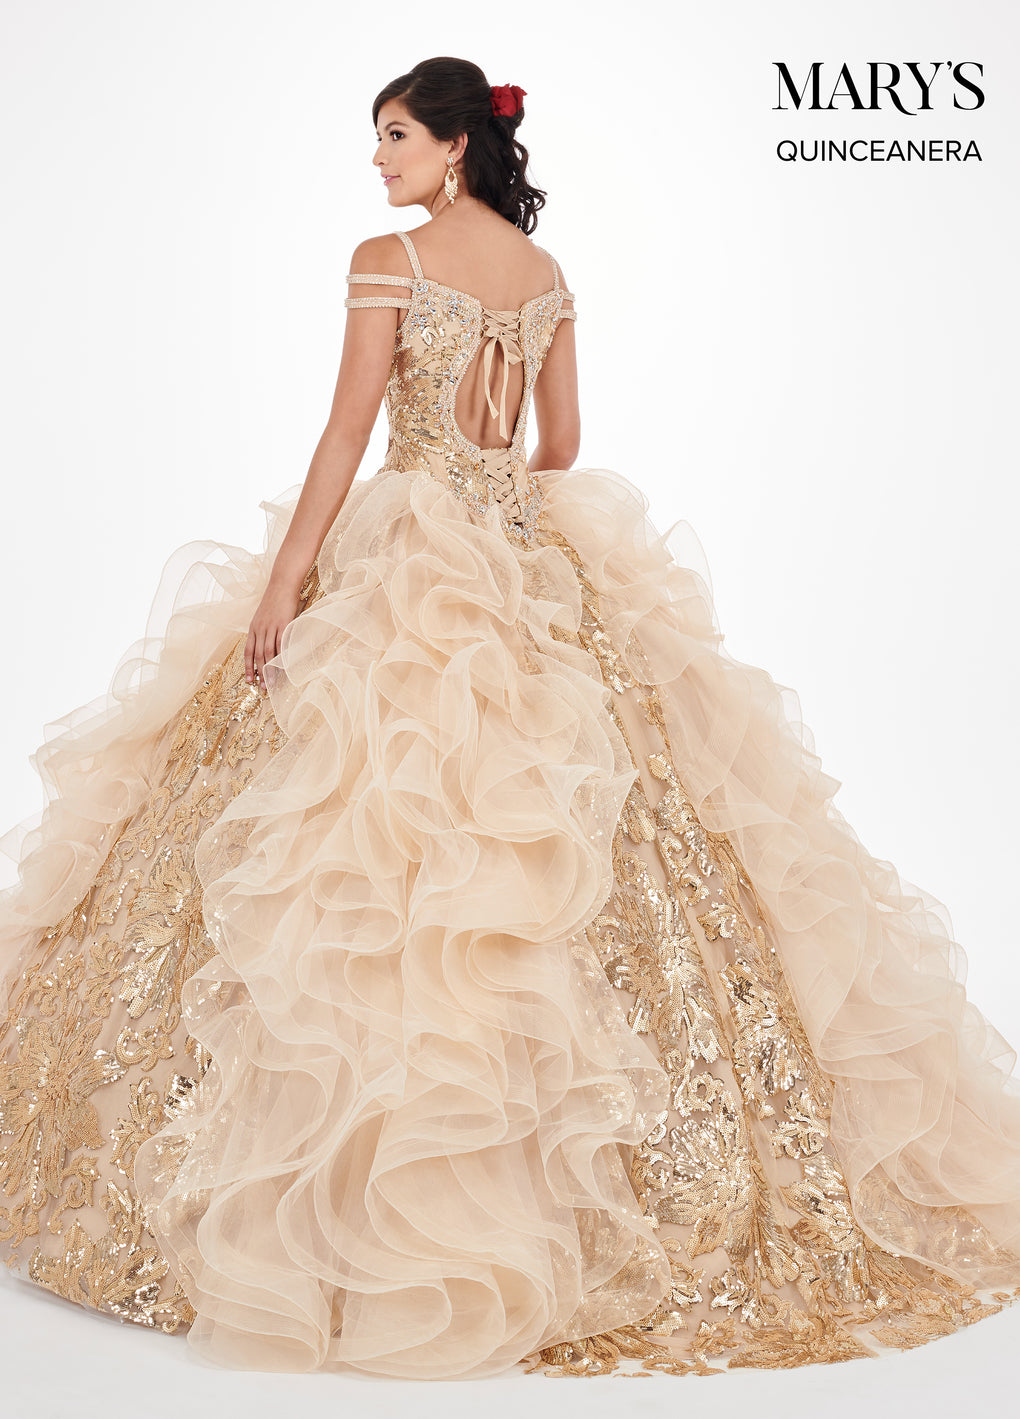 Marys Quinceanera Dresses in Gold, Red, or Silver Color